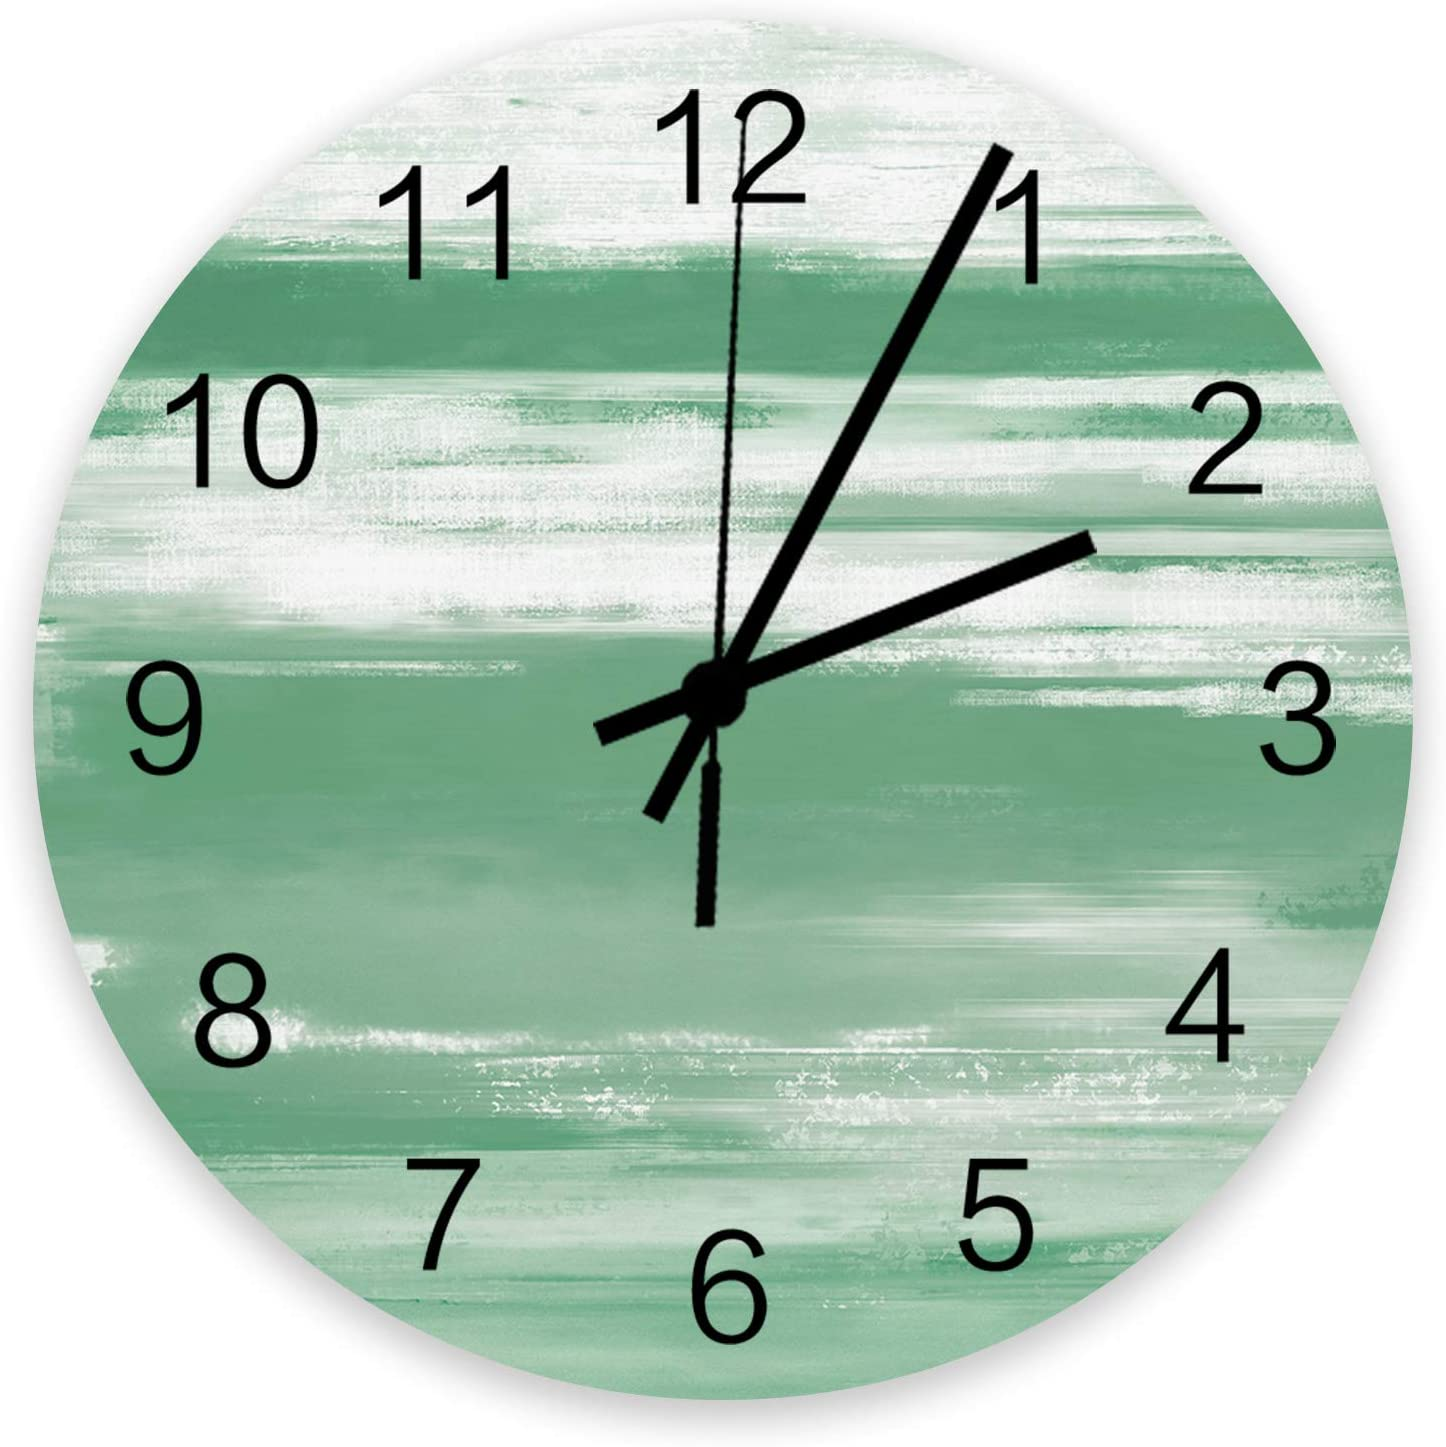 Roses Tulsa Mall Garden 12 Inch Max 85% OFF Wooden Wall Clock Textu Abstract Turquoise